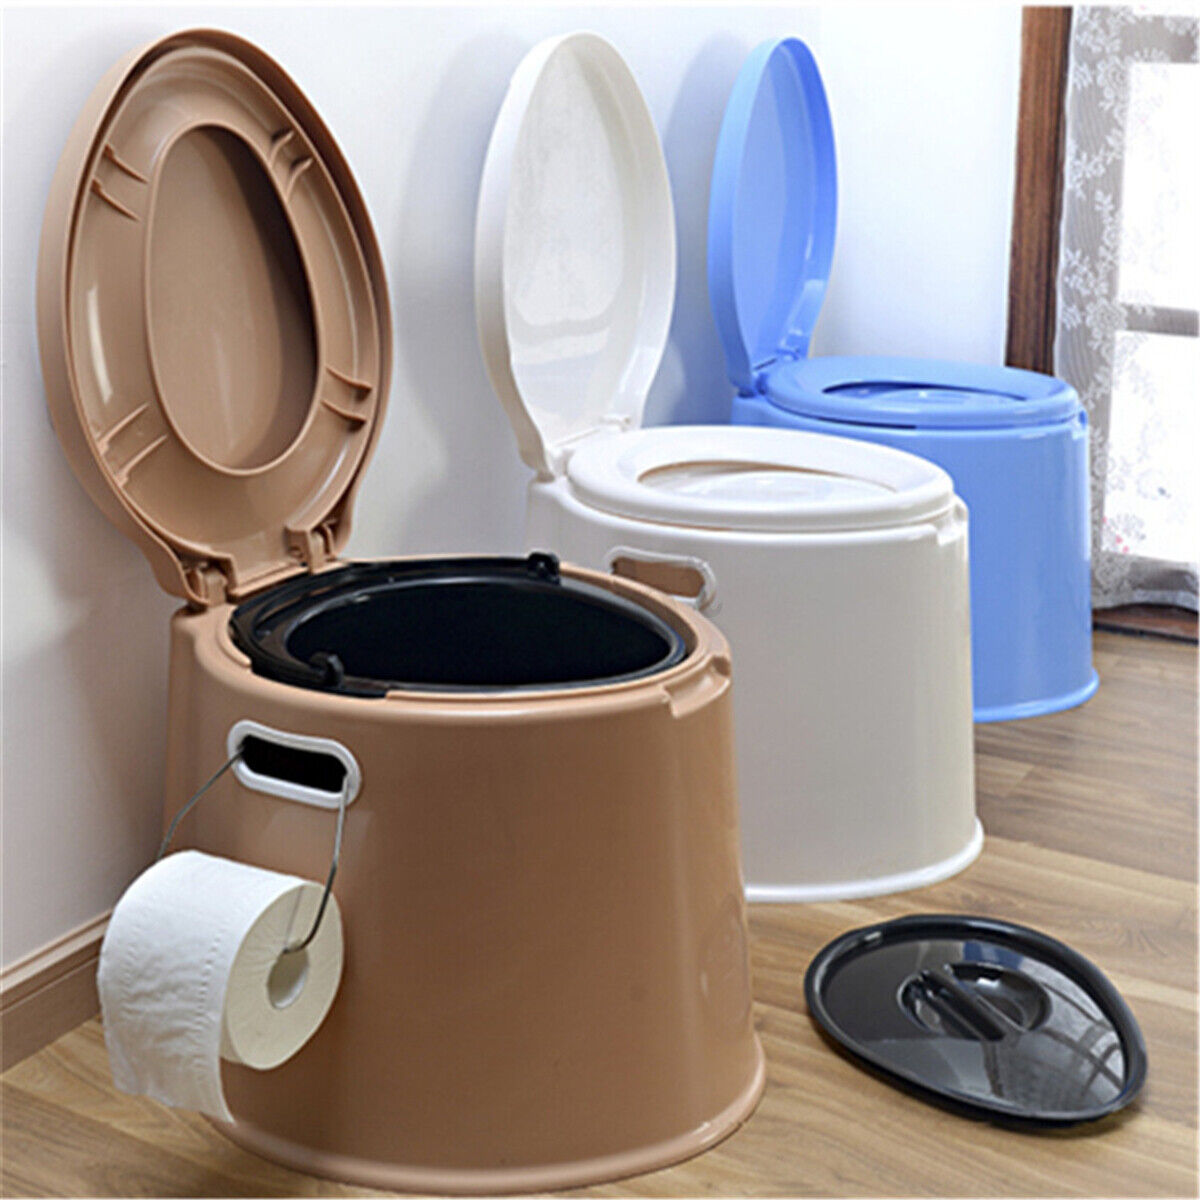 New Portable Toilet Commode Camping Outdoor Indoor Toilet Potty Travel Emergency